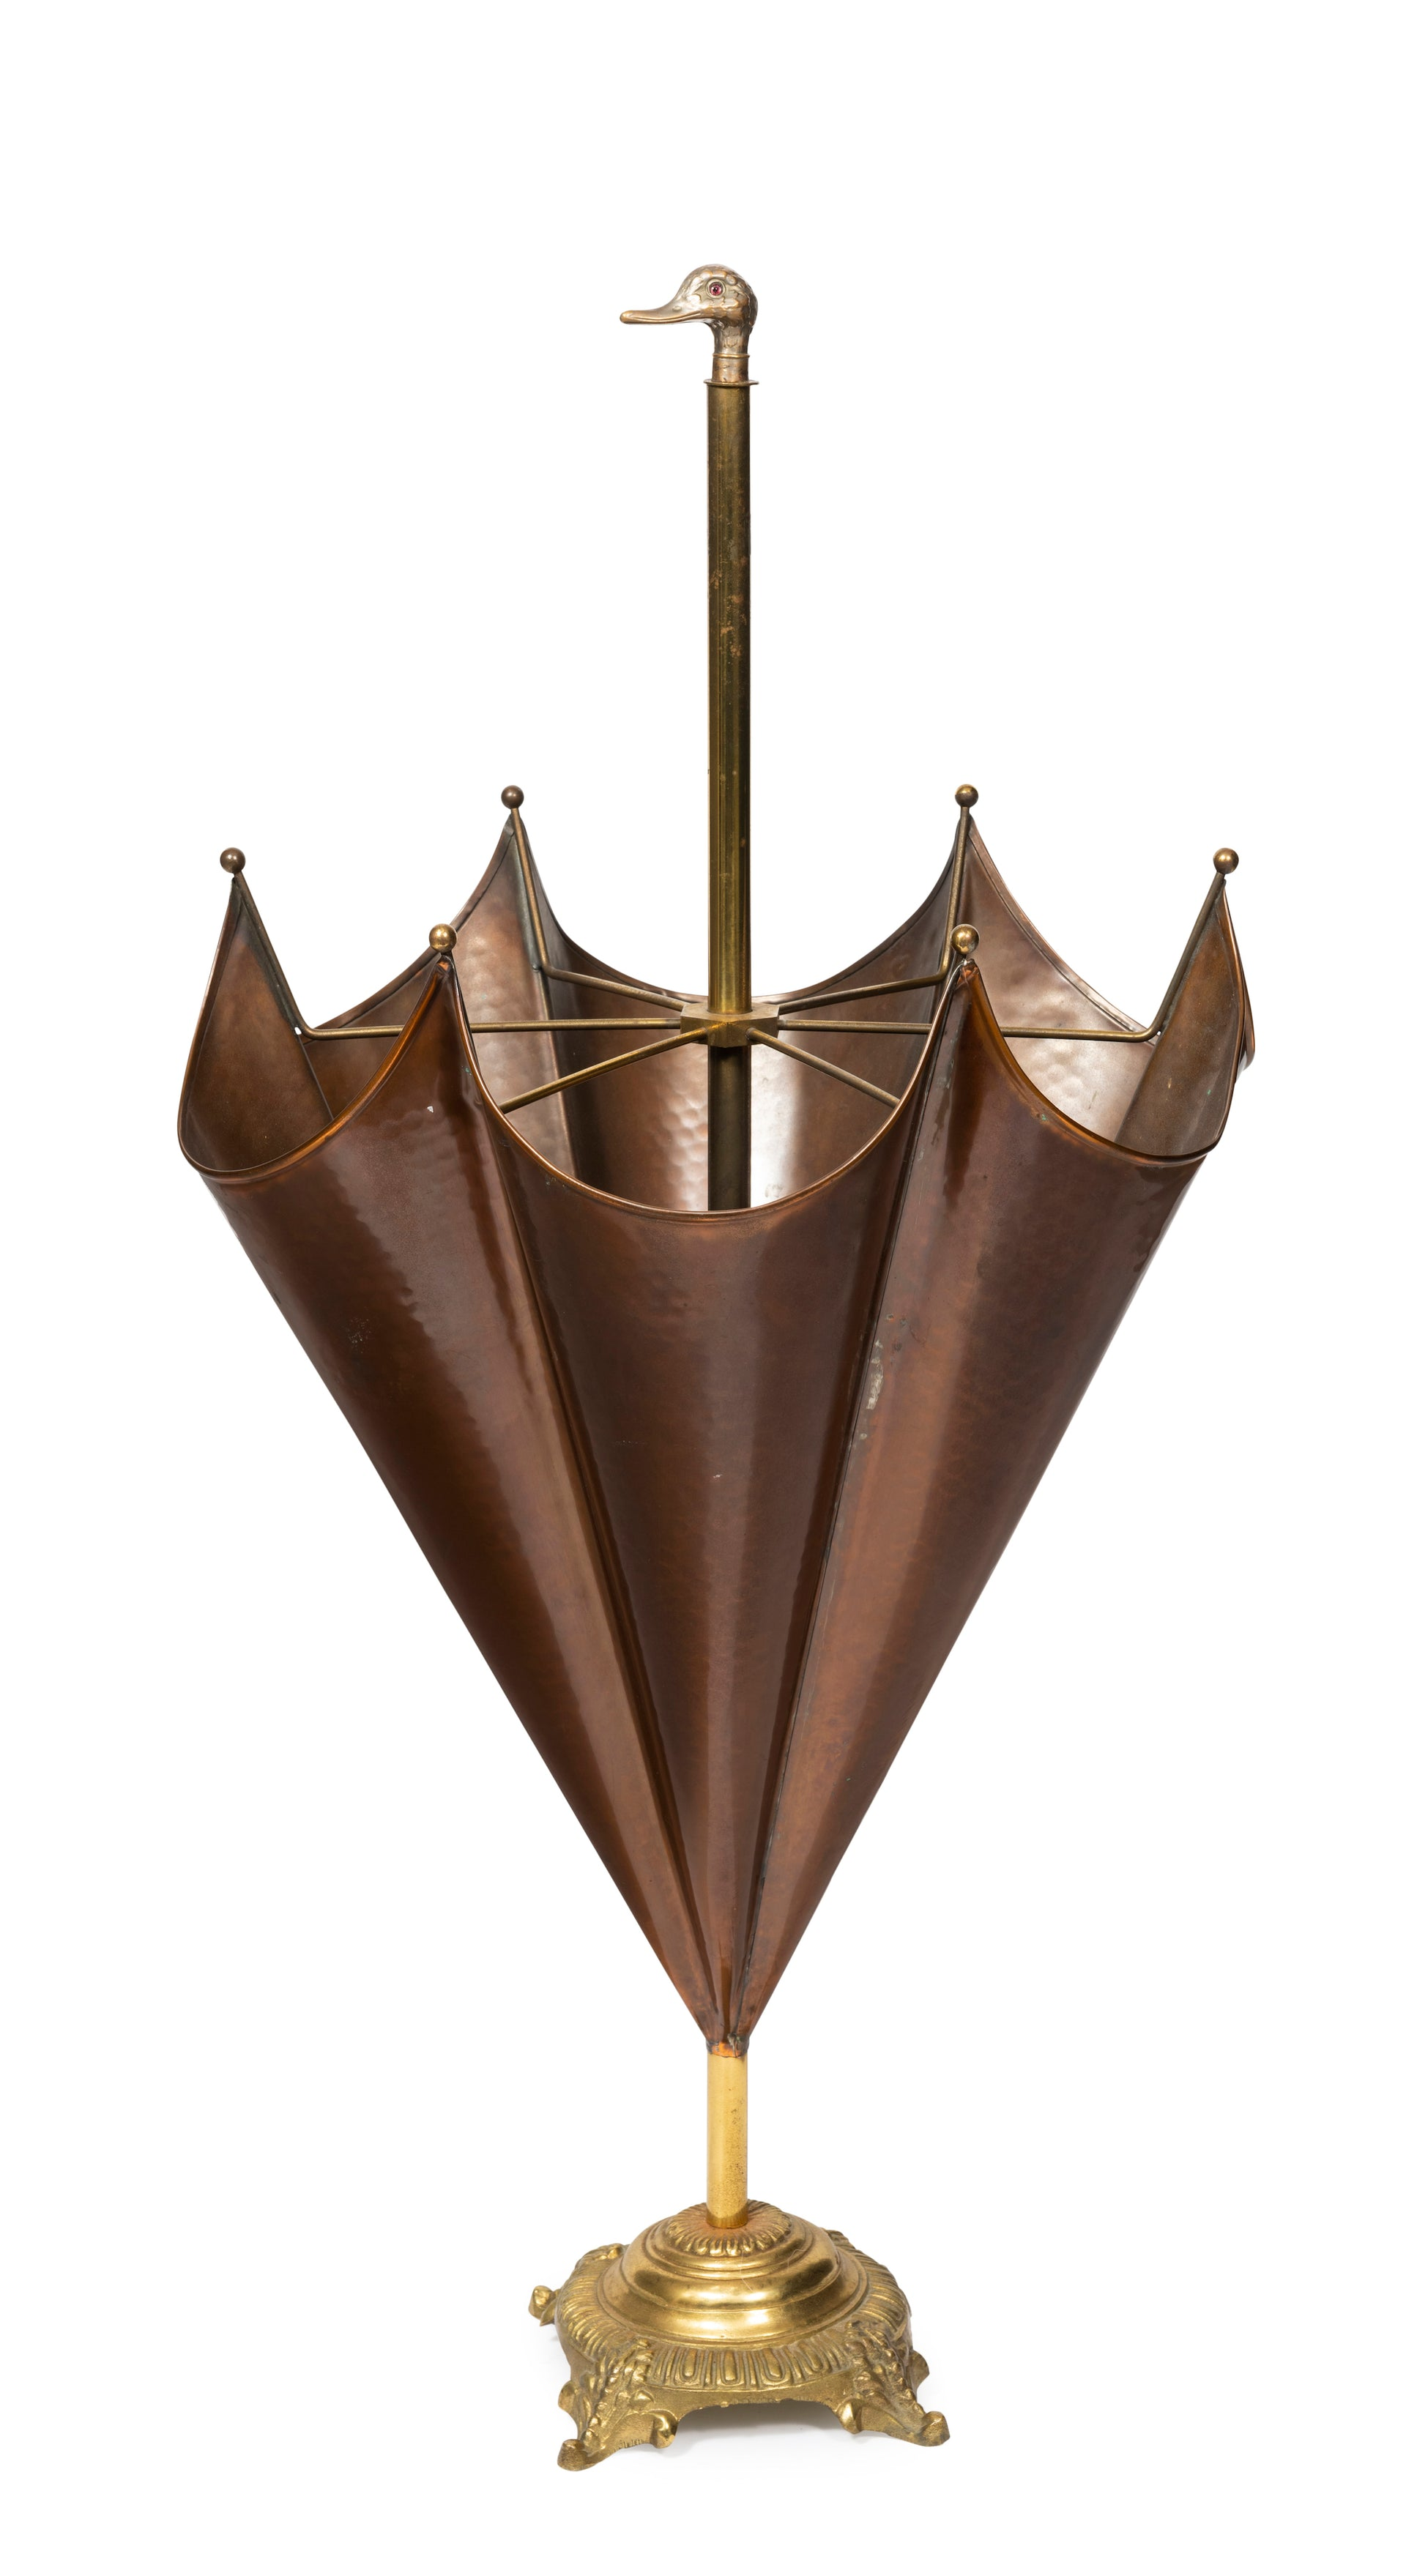 SOLD A stylish copper and brass parasol form umbrella stand, French Circa 1900